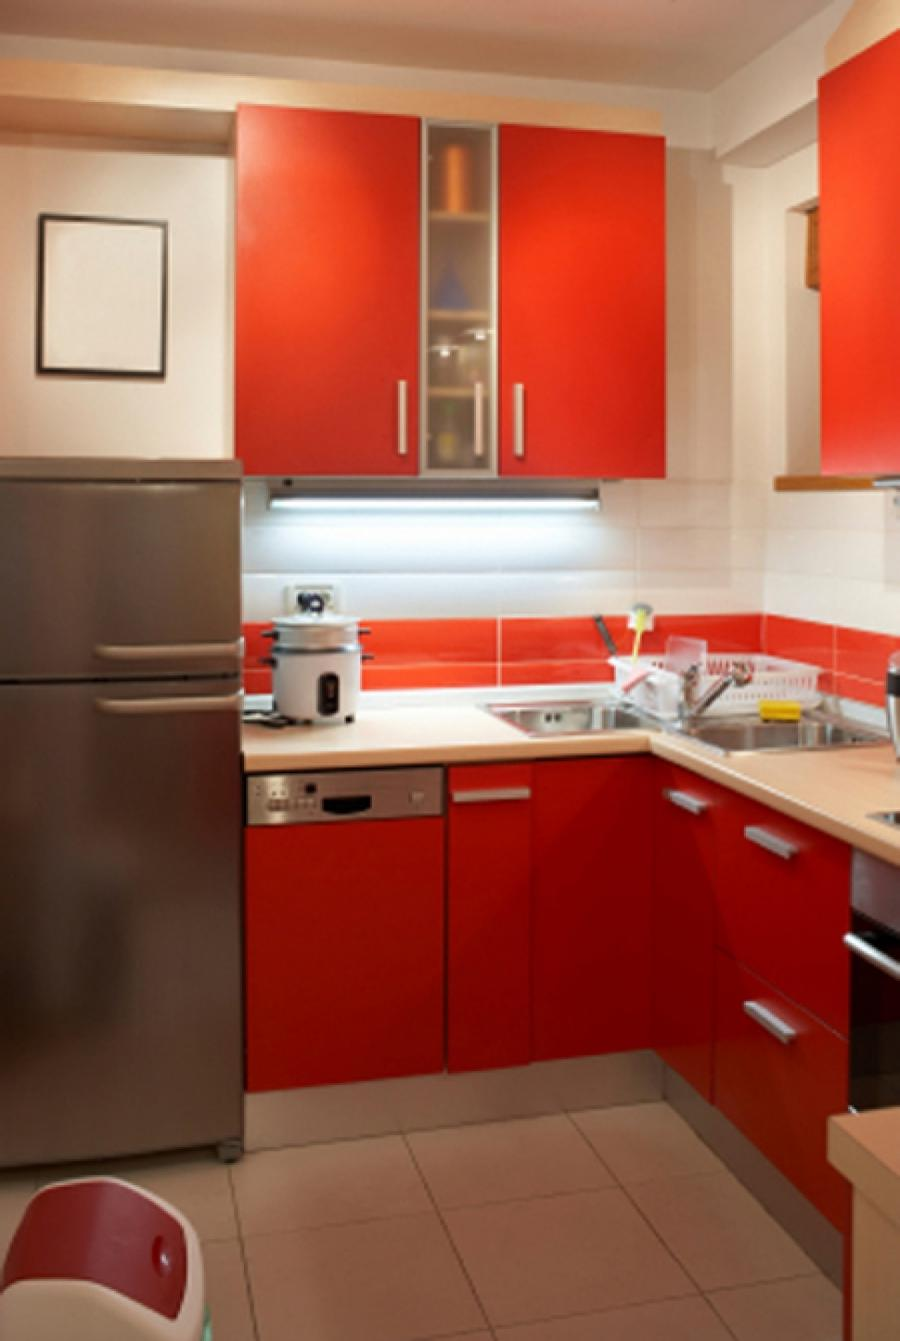 Photos of kitchen designs for small spaces for Modern kitchen designs for small spaces